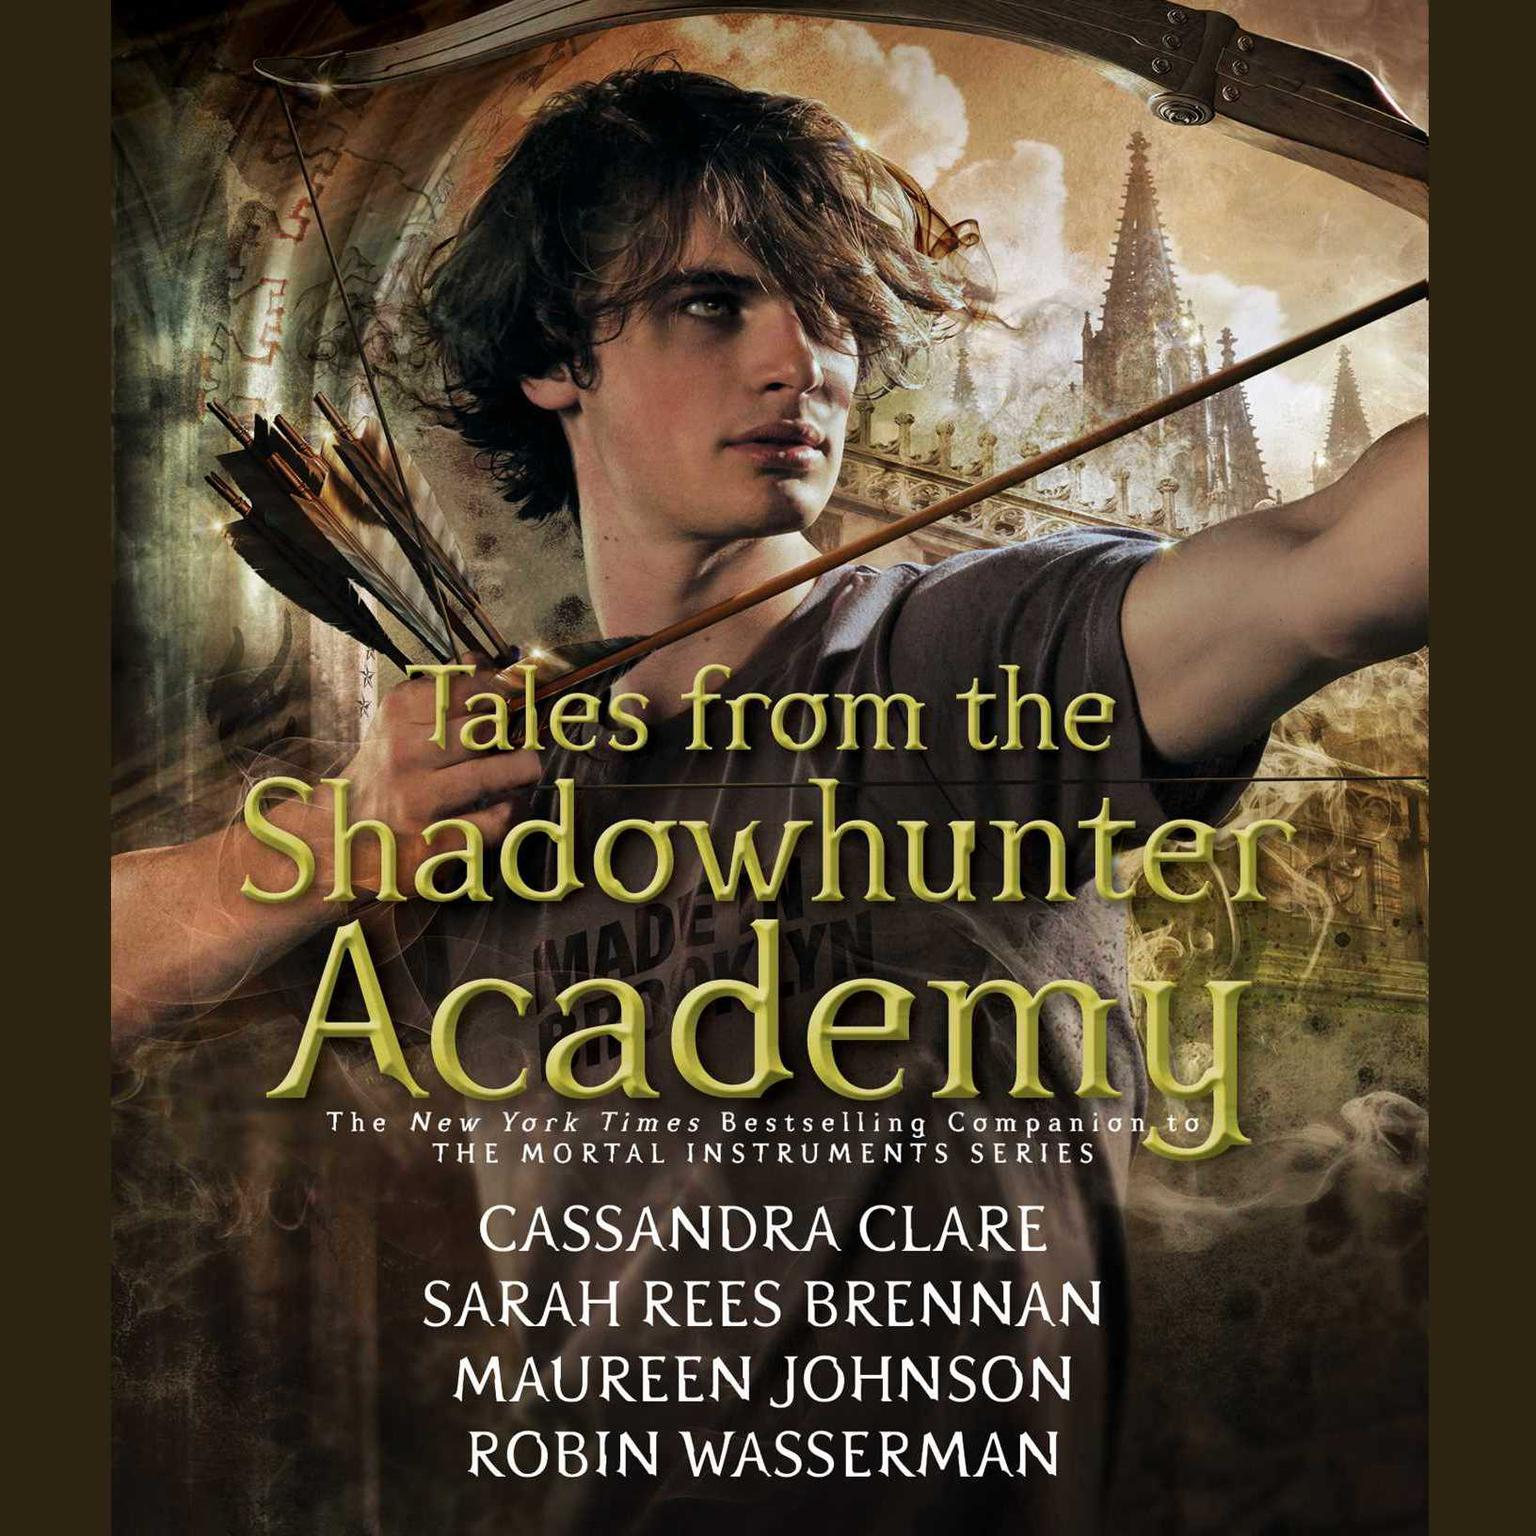 Printable Tales from the Shadowhunter Academy Audiobook Cover Art